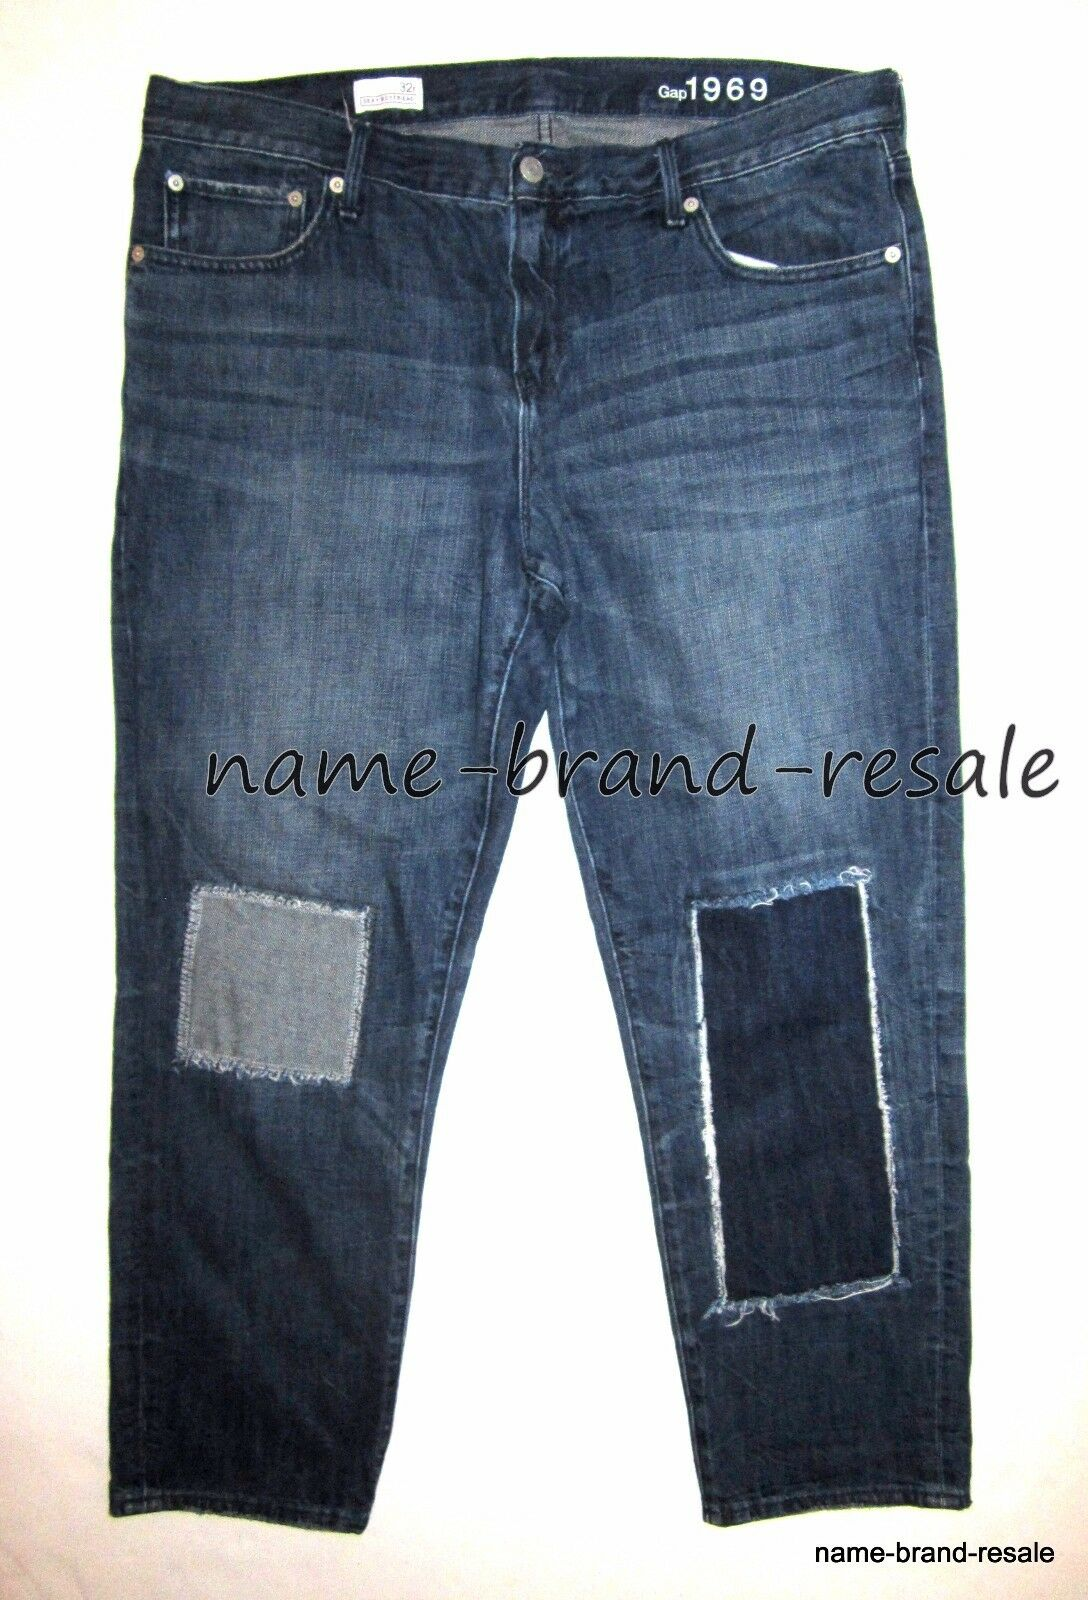 GAP 1969 SEXY BOYFRIEND Jeans Womens 32 R Faded Denim PATCHED Distressed RIPPED